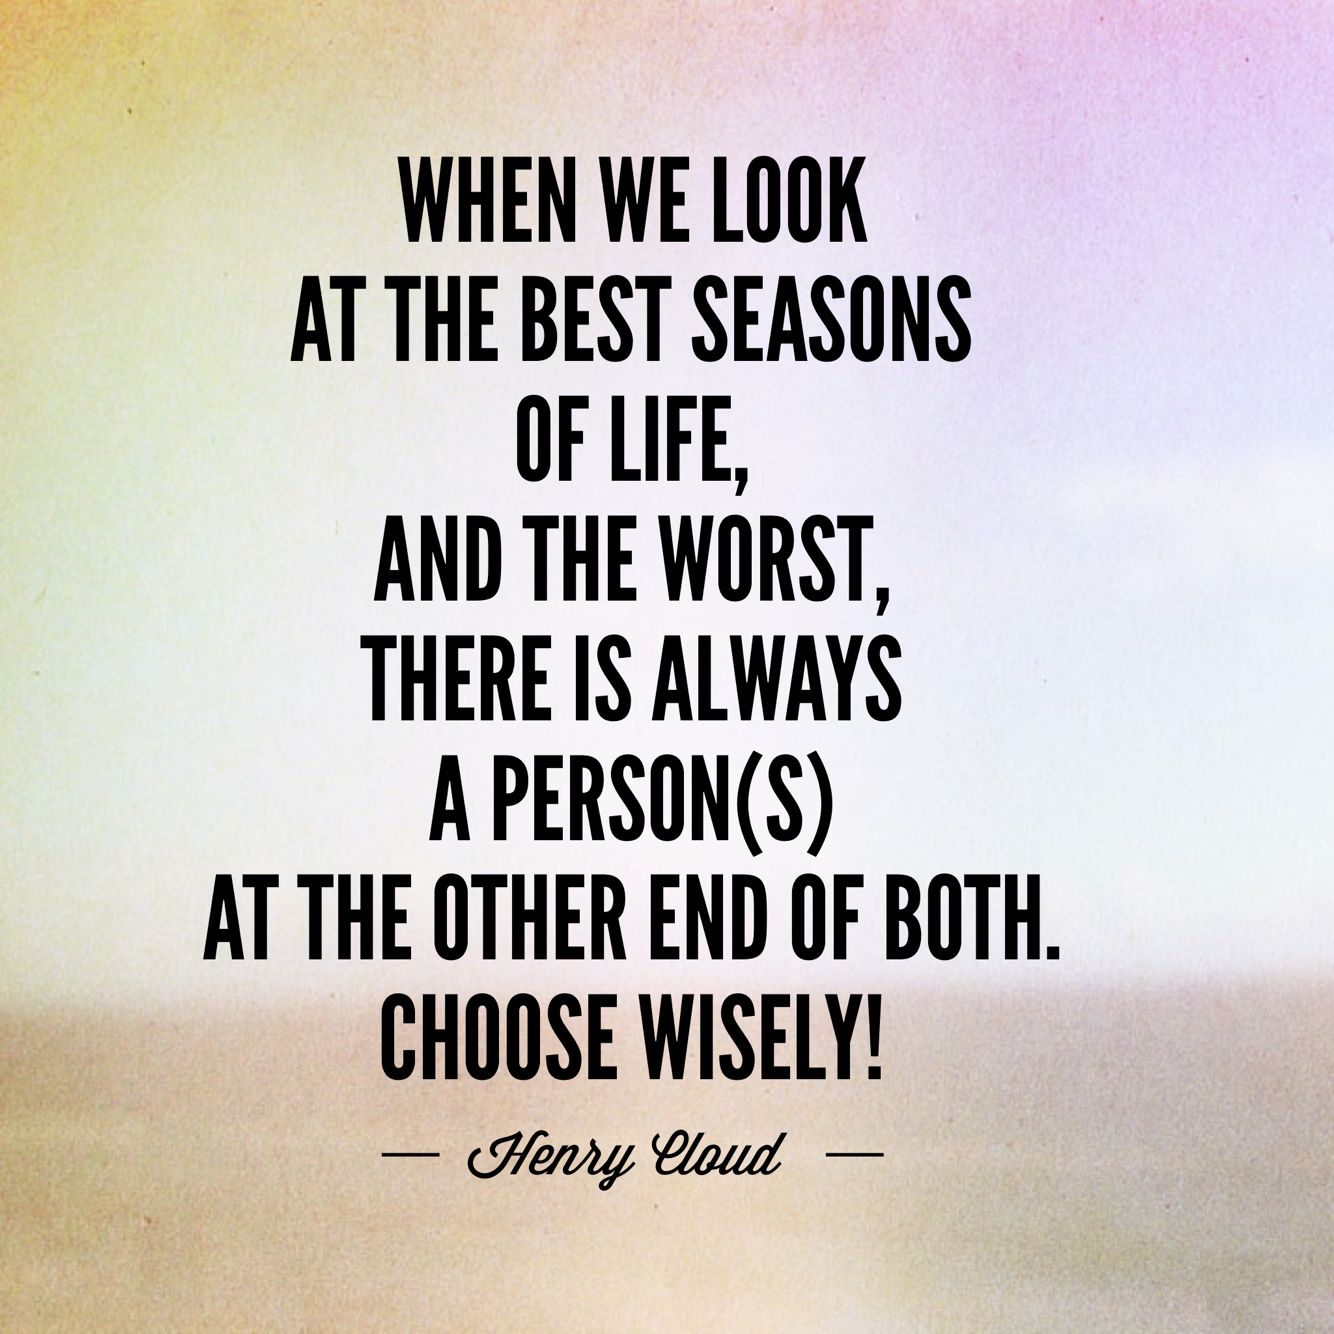 End Of Life Quotes When We Look At The Best Seasons Of Life And The Worst There Is